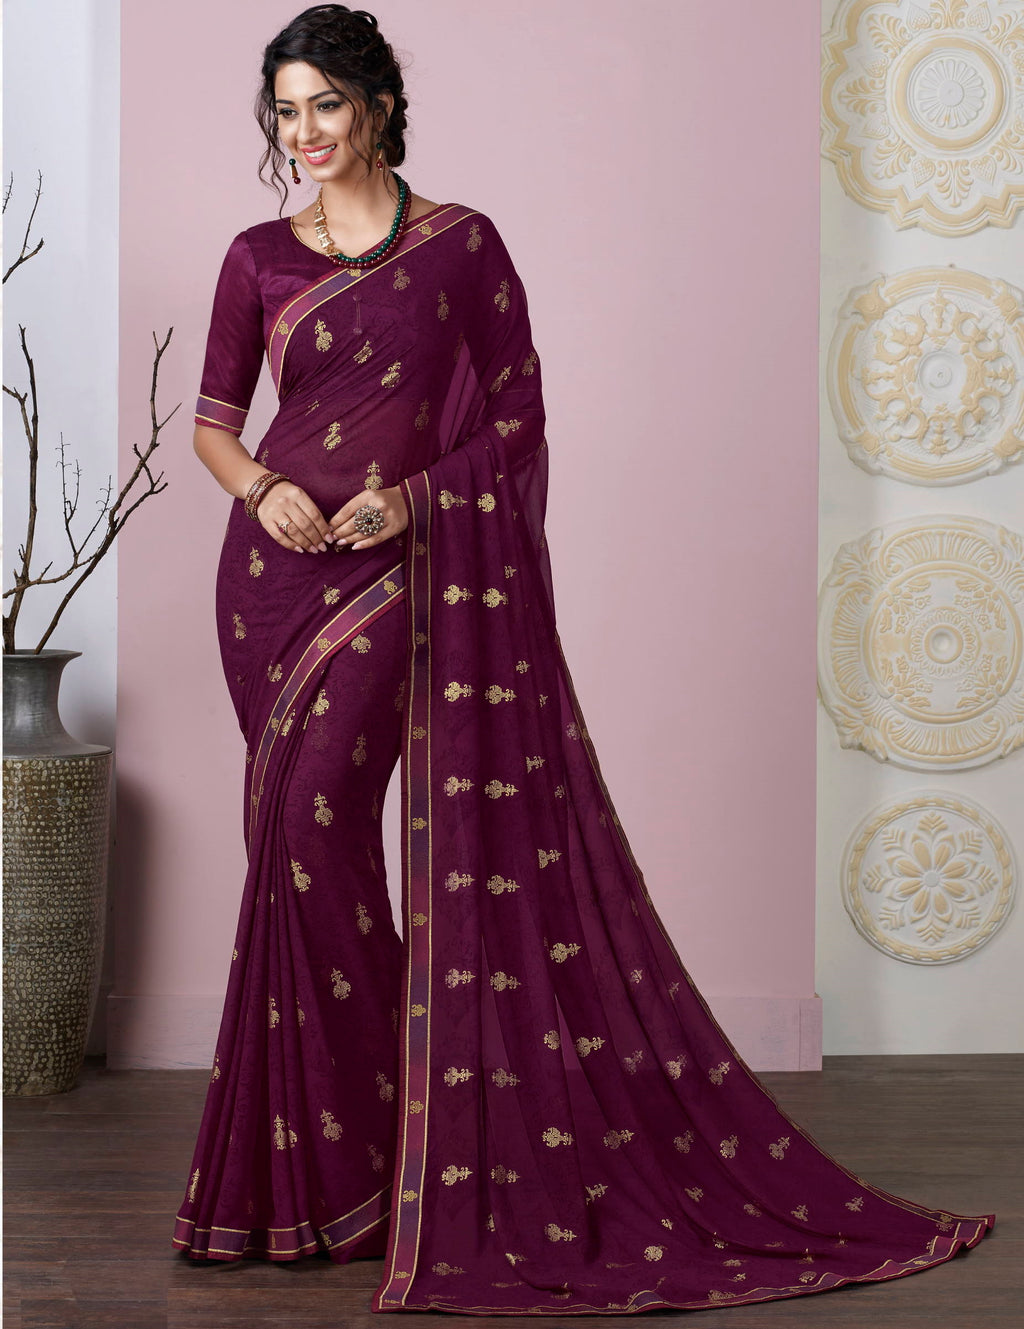 Purple Color Chiffon Pretty Kitty Party Sarees NYF-4214 - YellowFashion.in